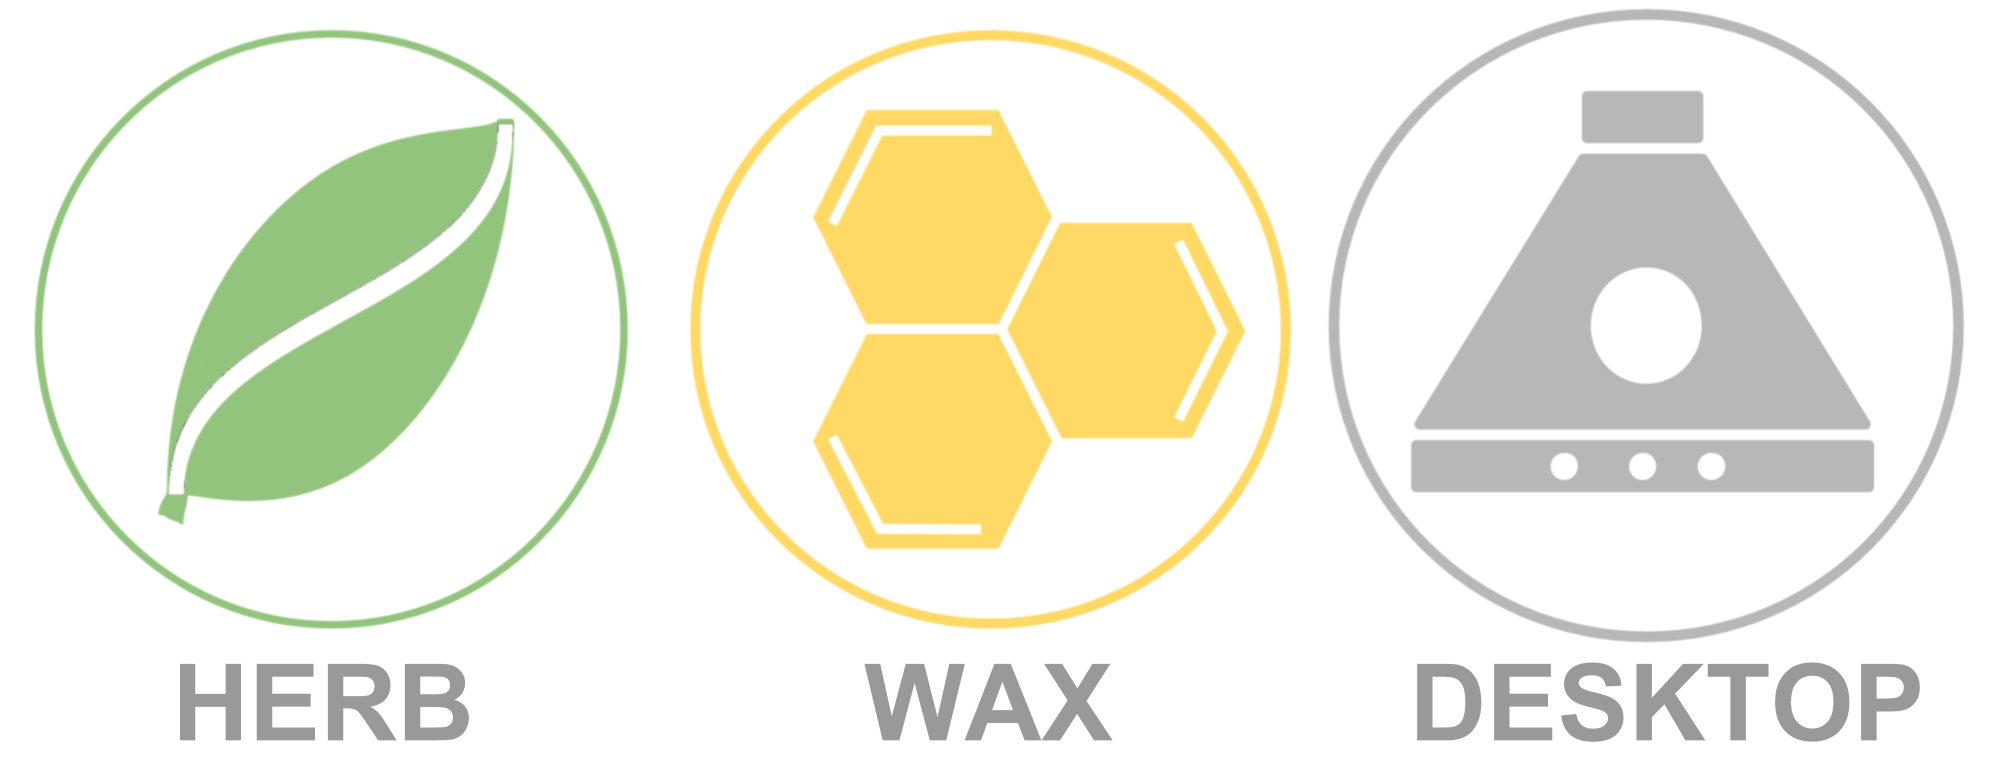 herb wax desktop icon vapeactive